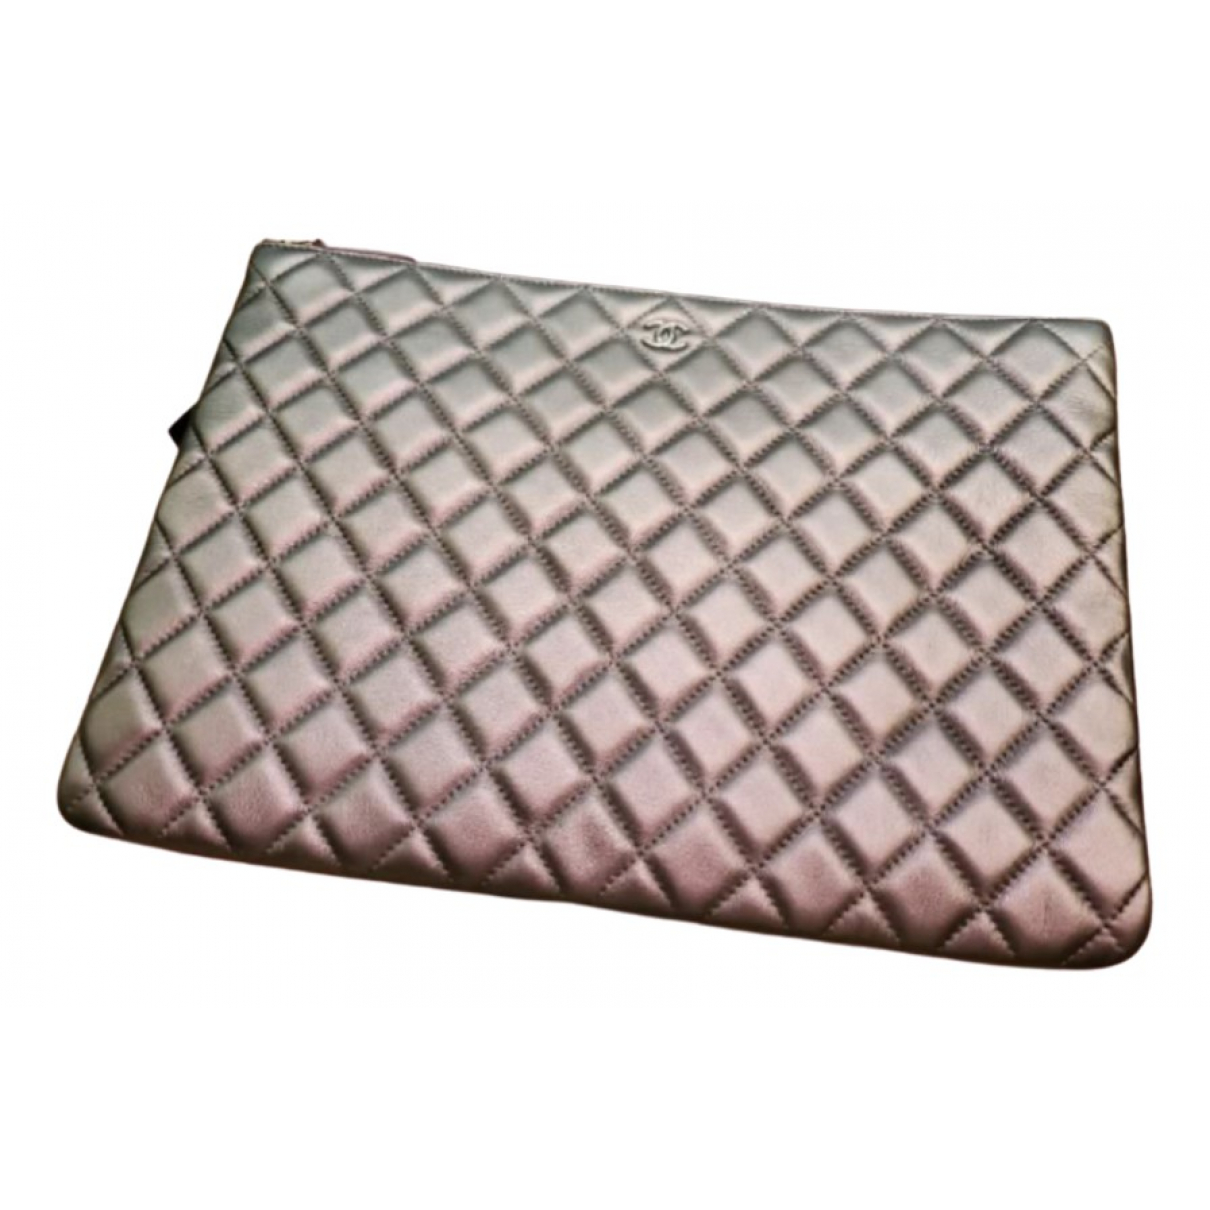 Chanel Timeless/Classique Metallic Leather Clutch bag for Women \N